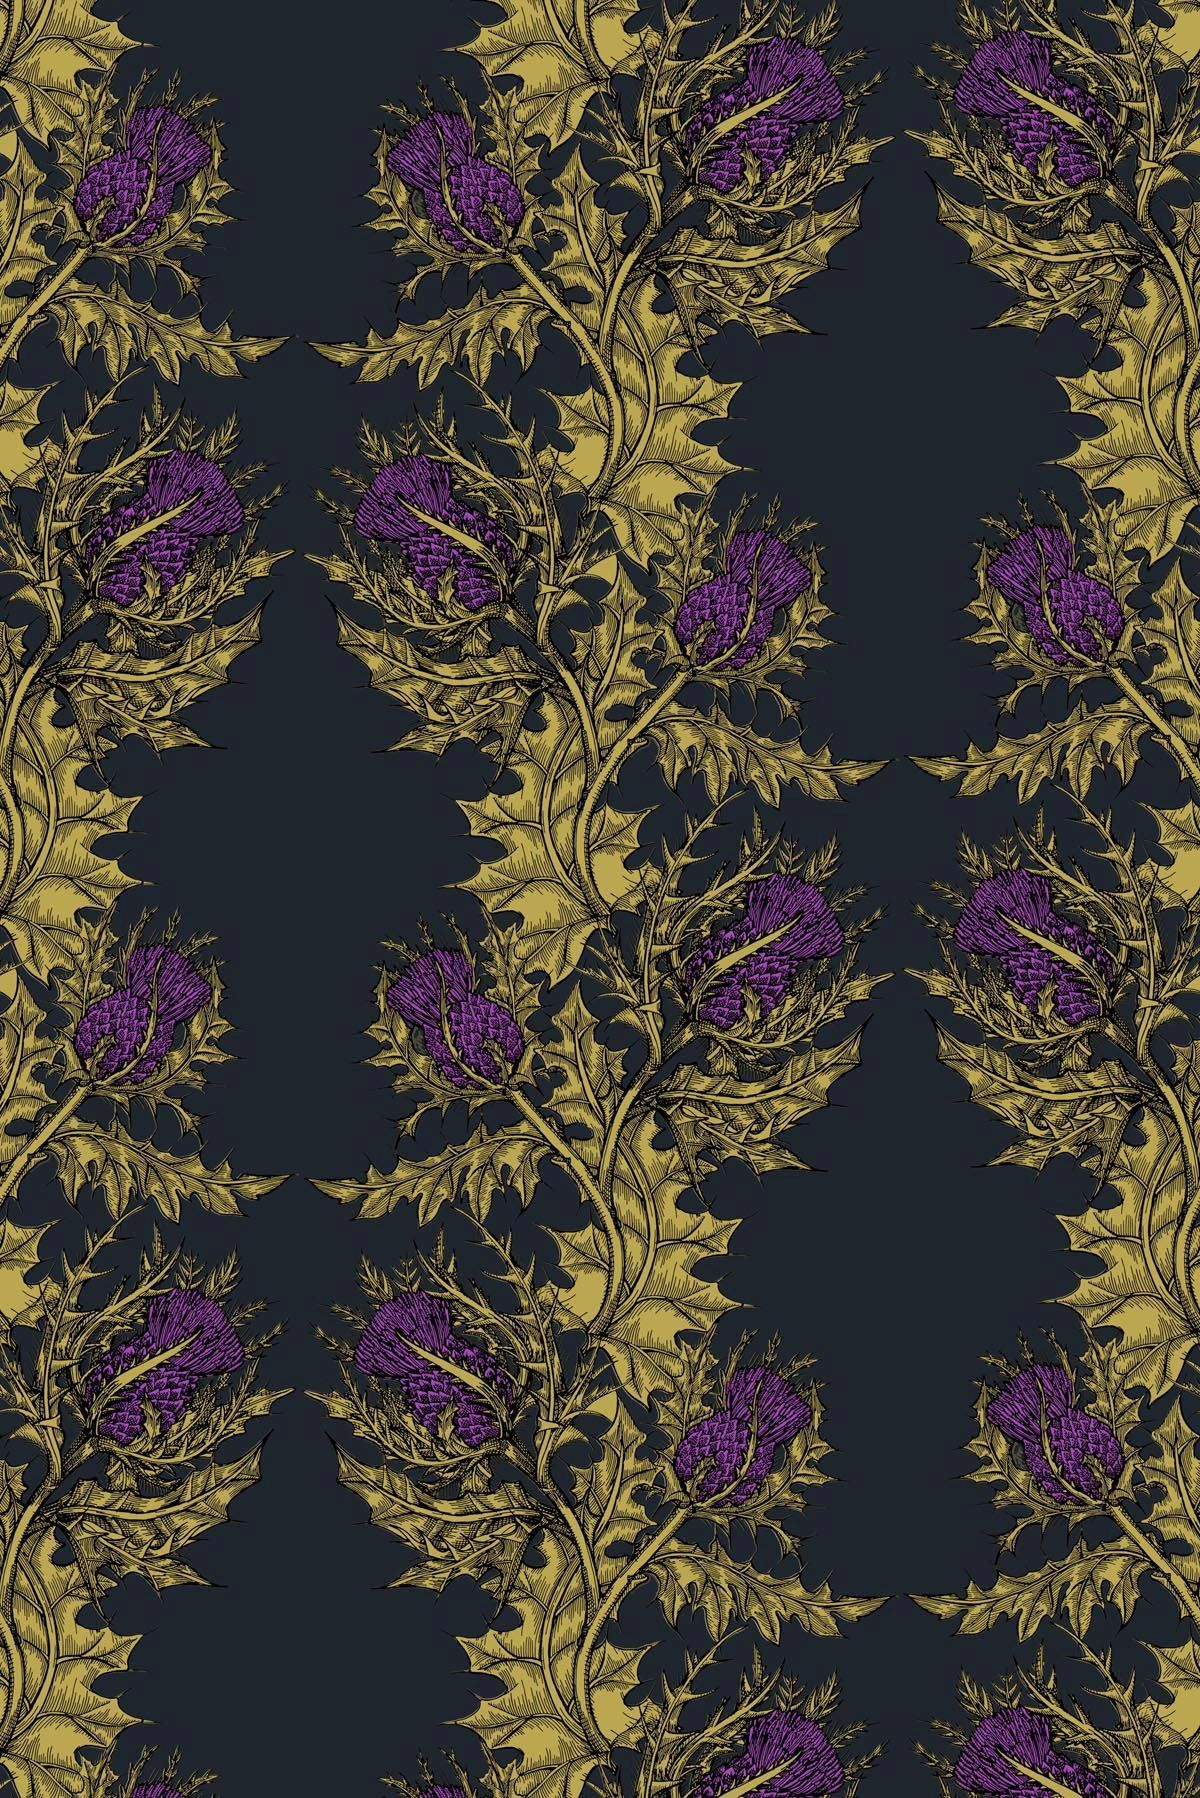 Grand Thistle Wallpaper From The Scottish Interiors Company Timorous Beasties